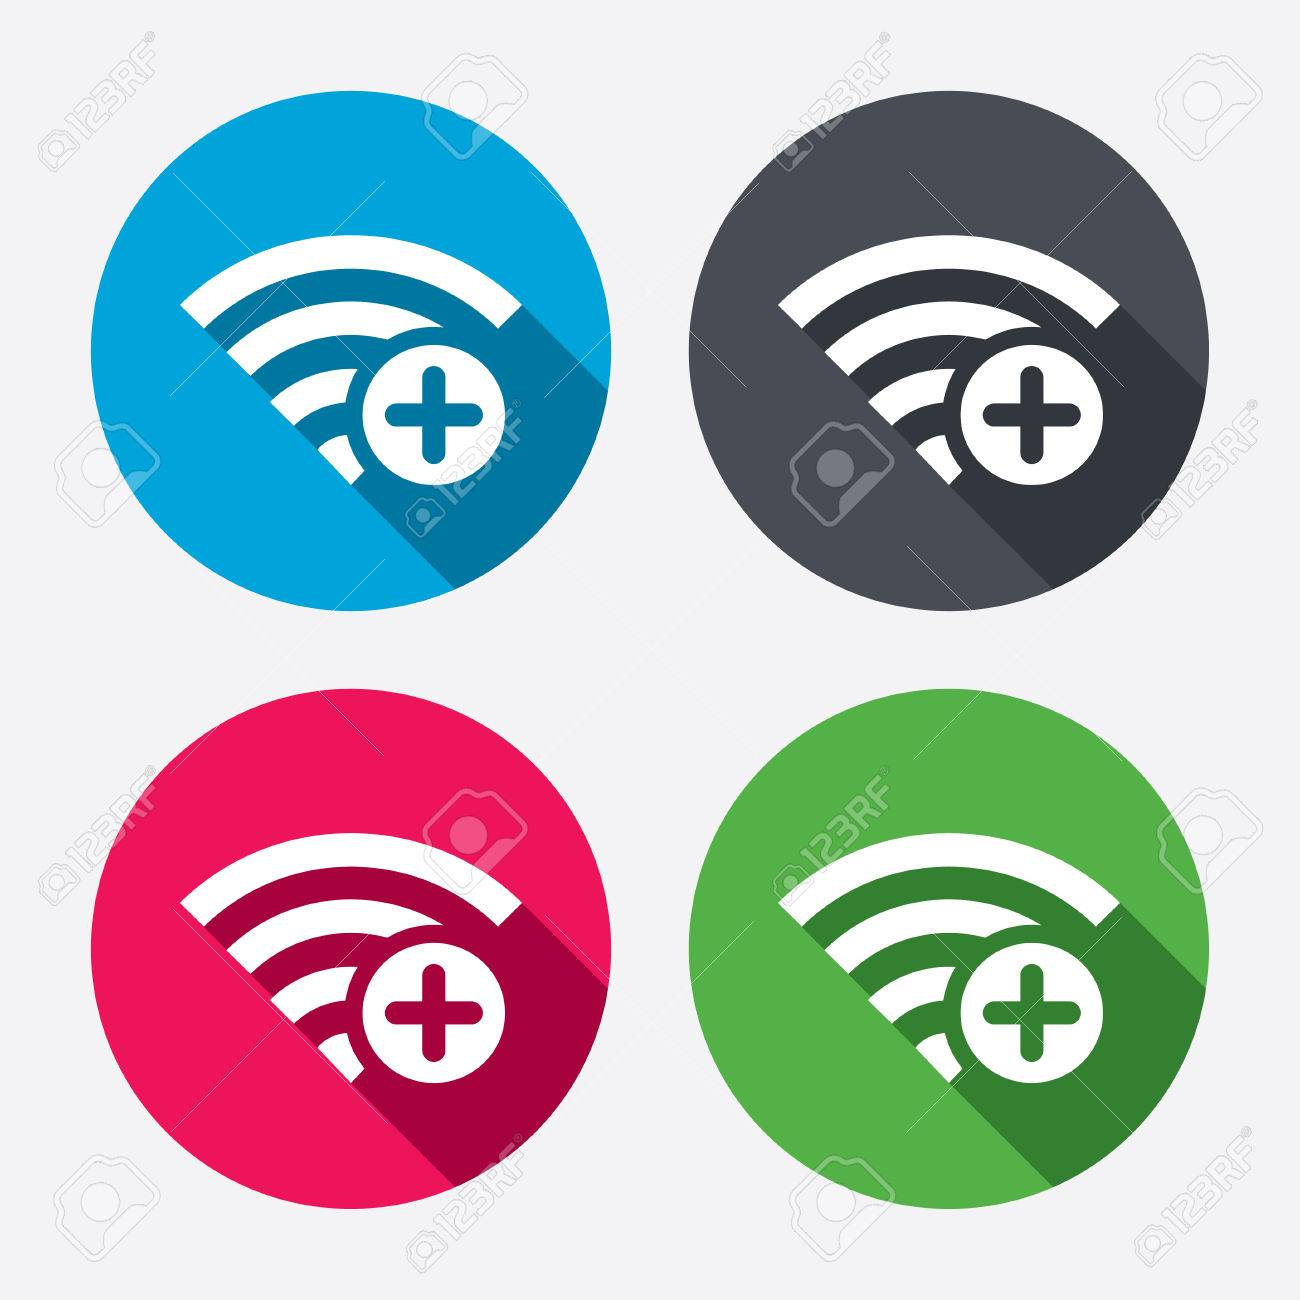 Wifi plus sign add wifi symbol wireless network icon wifi wifi plus sign add wifi symbol wireless network icon wifi zone circle biocorpaavc Choice Image